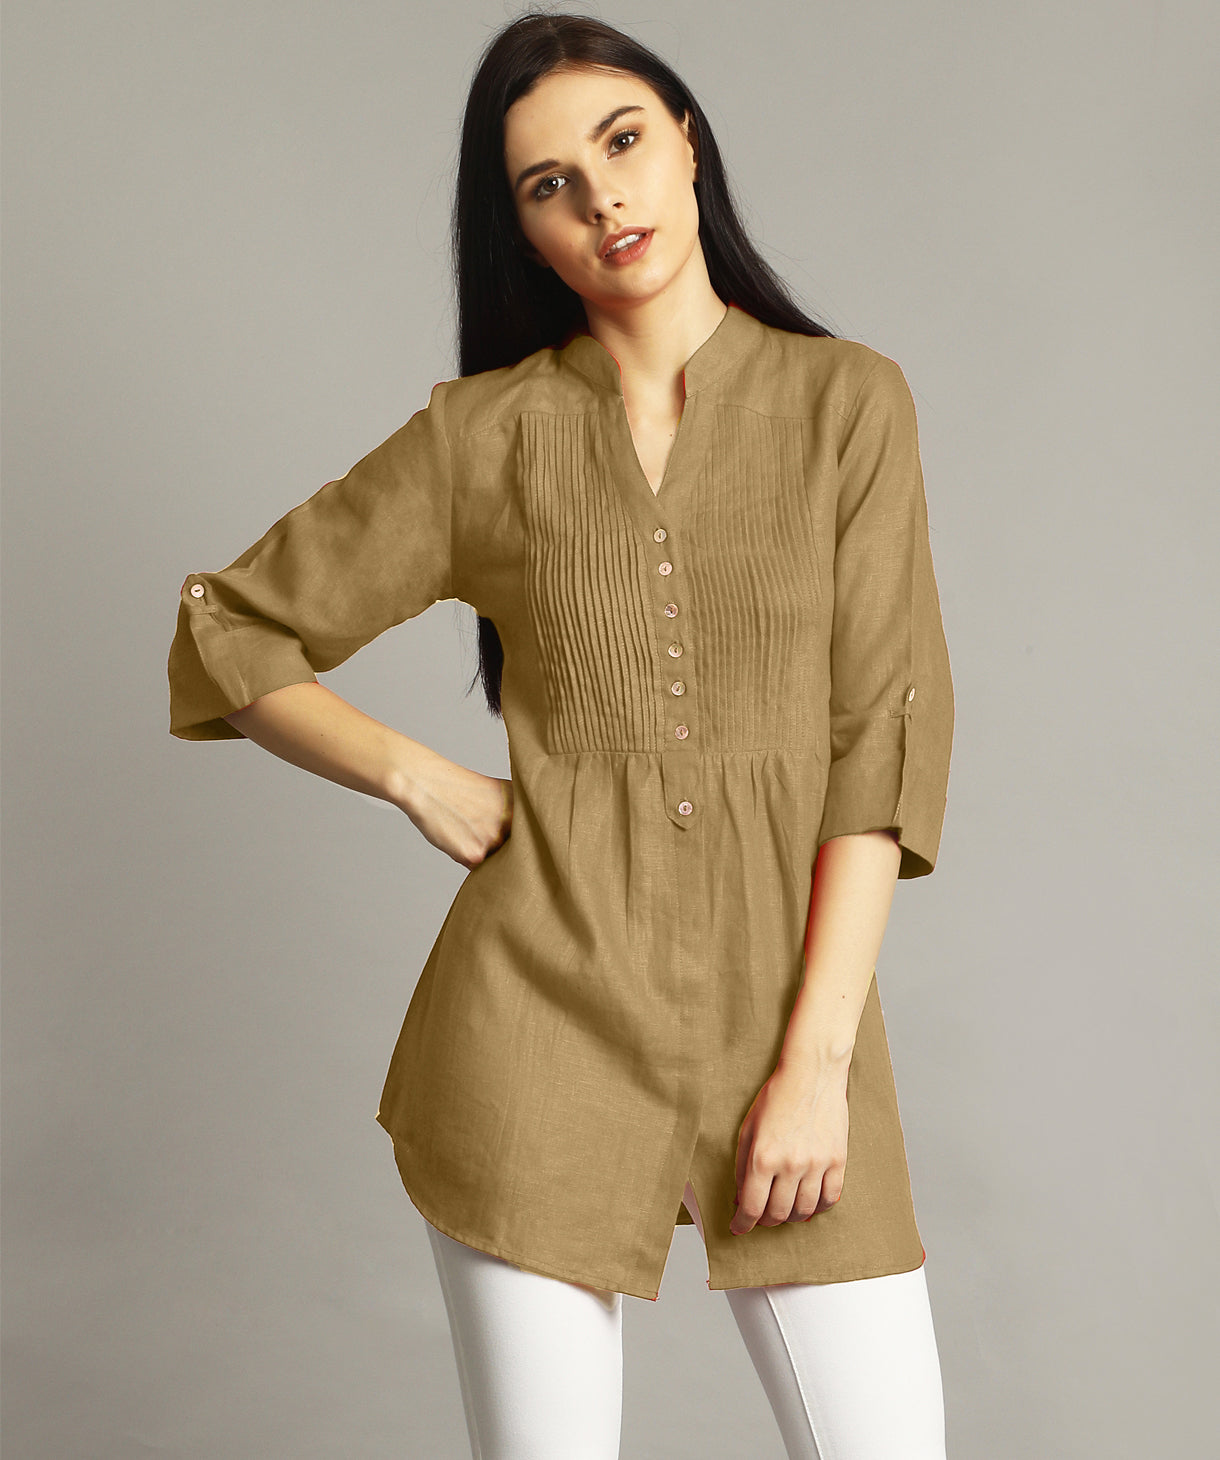 Yellow Ochre Pleated Yoke Roll-Up Tunic - Uptownie